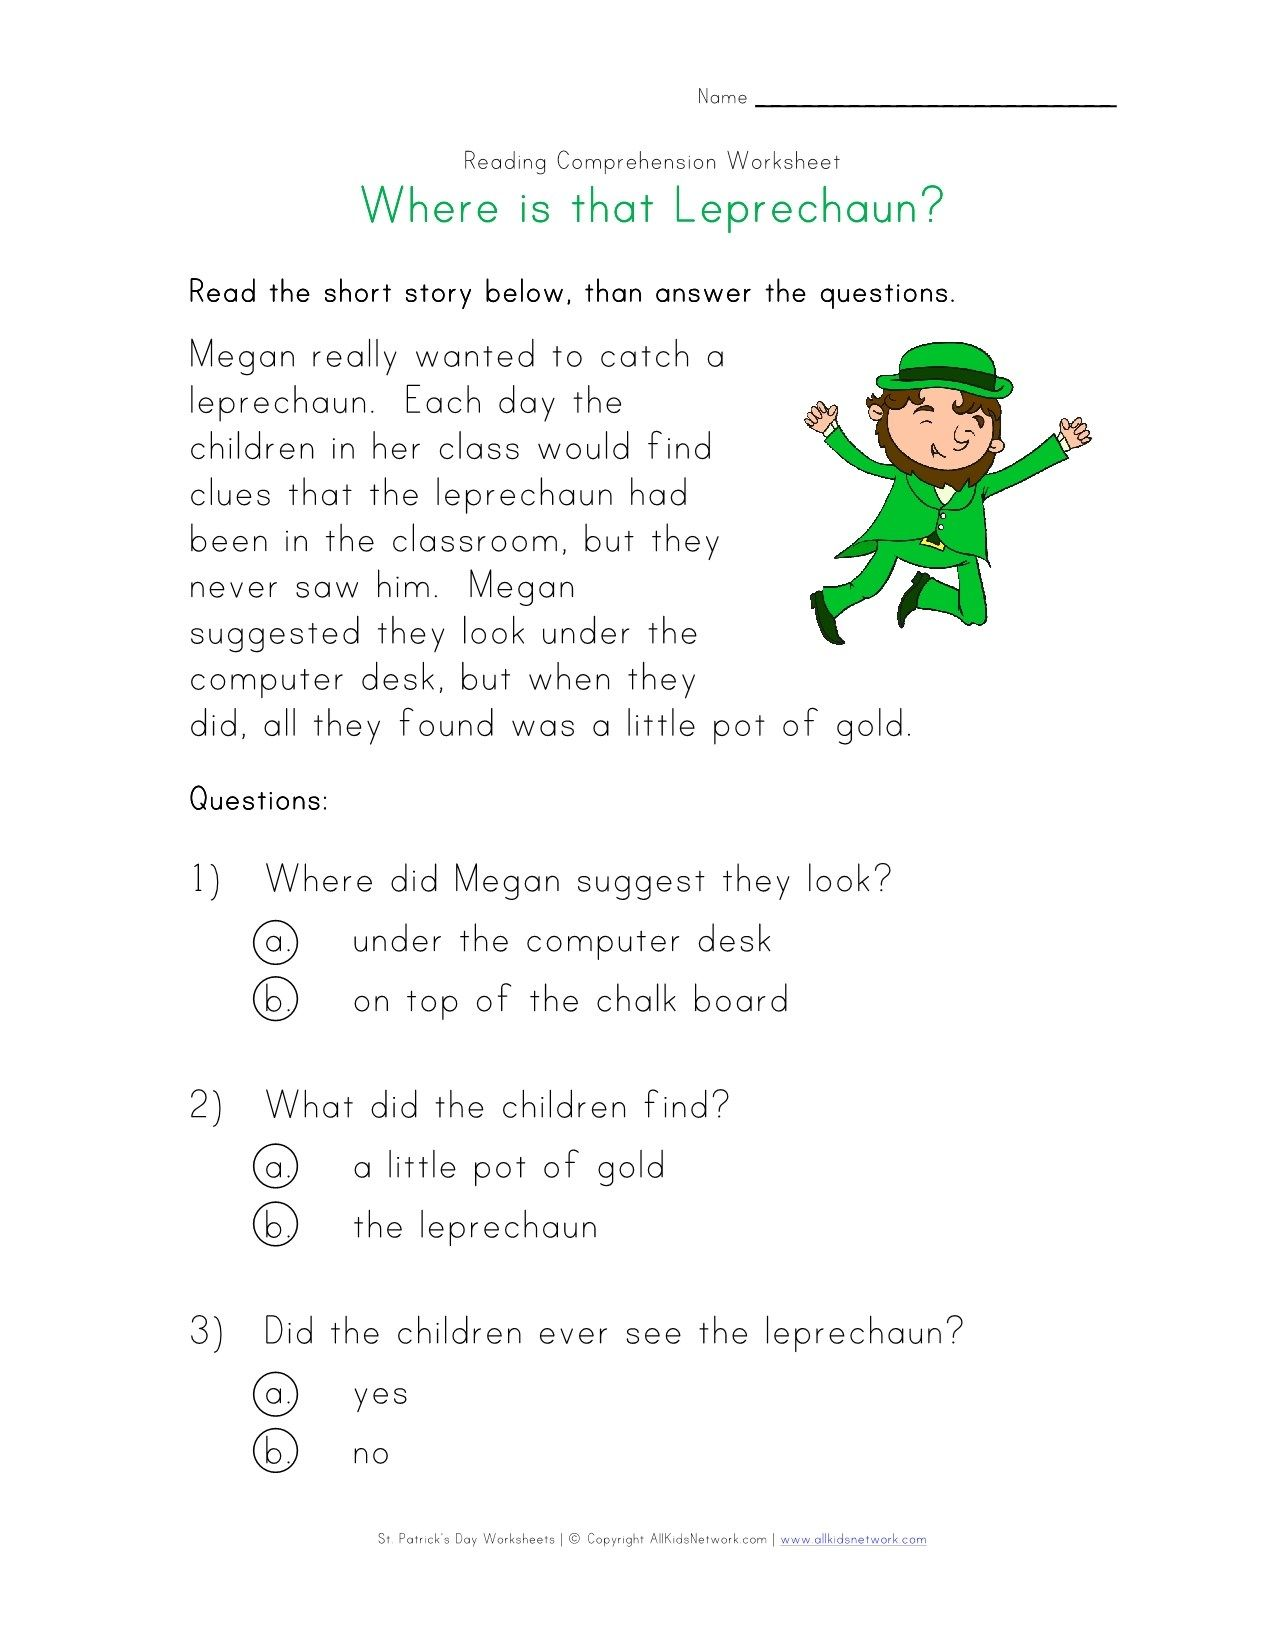 St Patrick S Day Worksheets